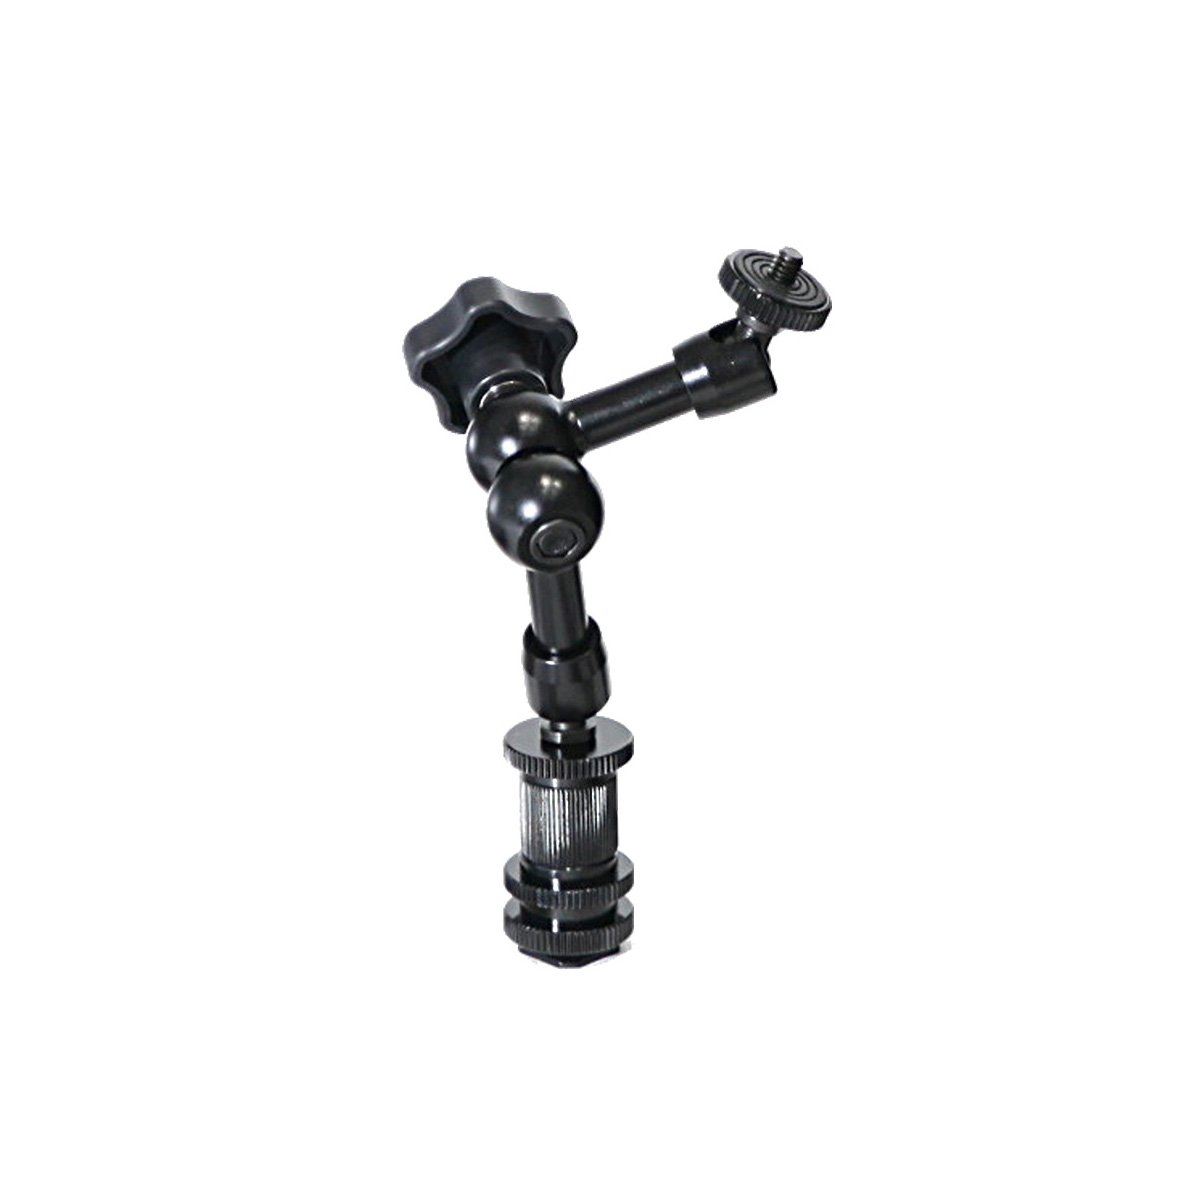 ProAm USA Articulating Accessory Shoe Arm for LCD Monitors